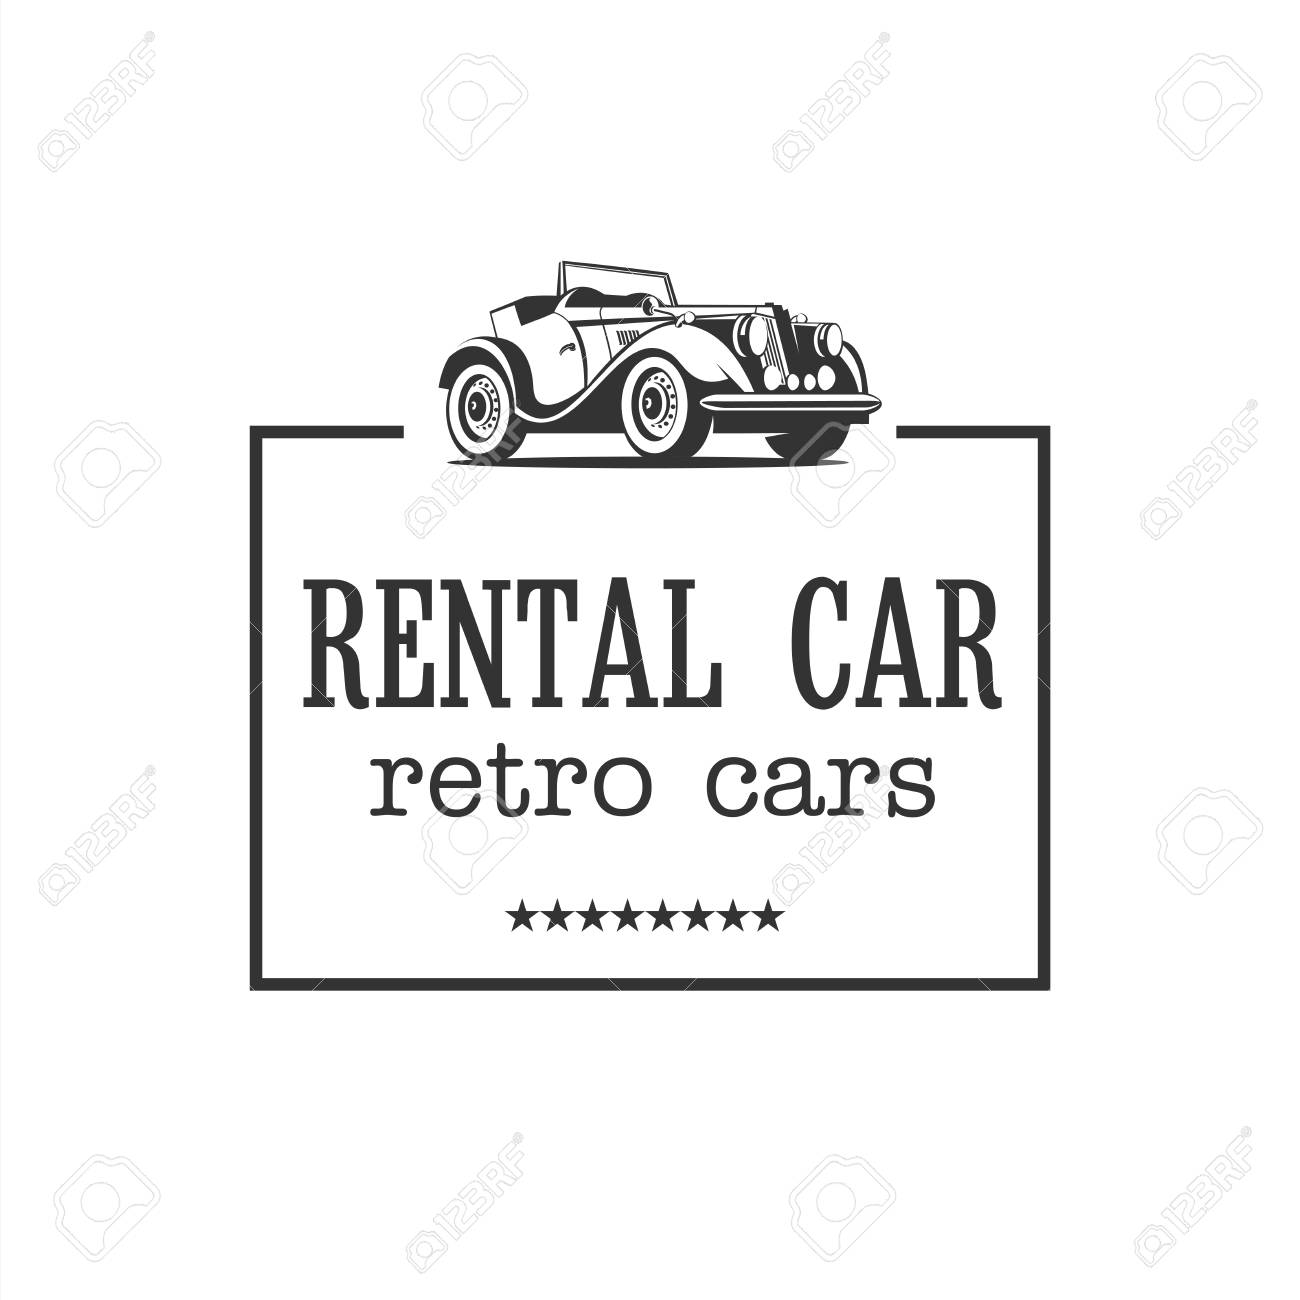 Retro Car. Vintage Cars For Rent. Vector Logo. Royalty Free Cliparts ...